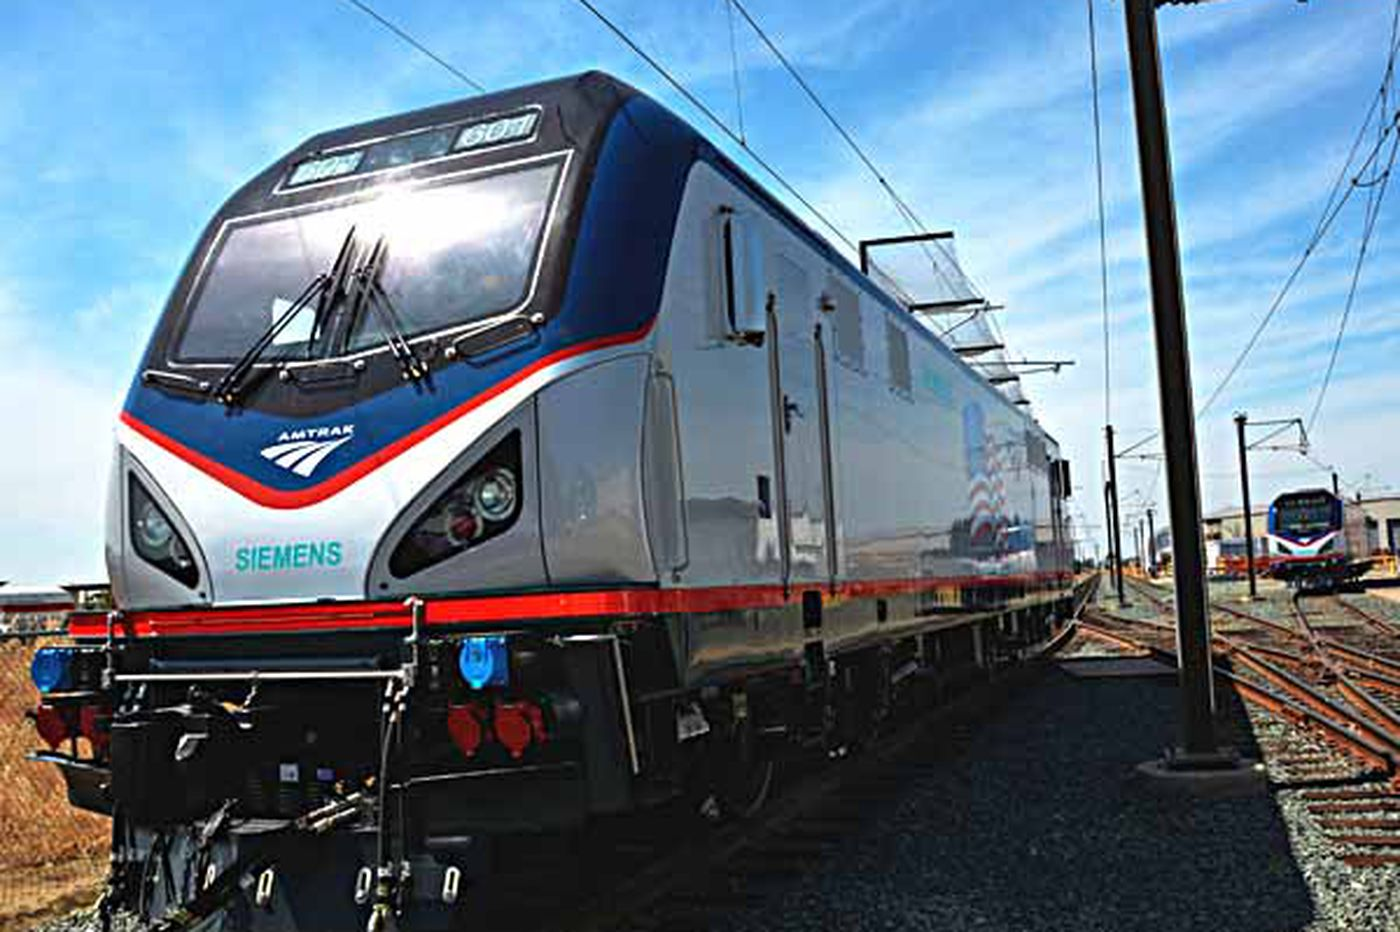 SEPTA plans to spend $154 million on new locomotives